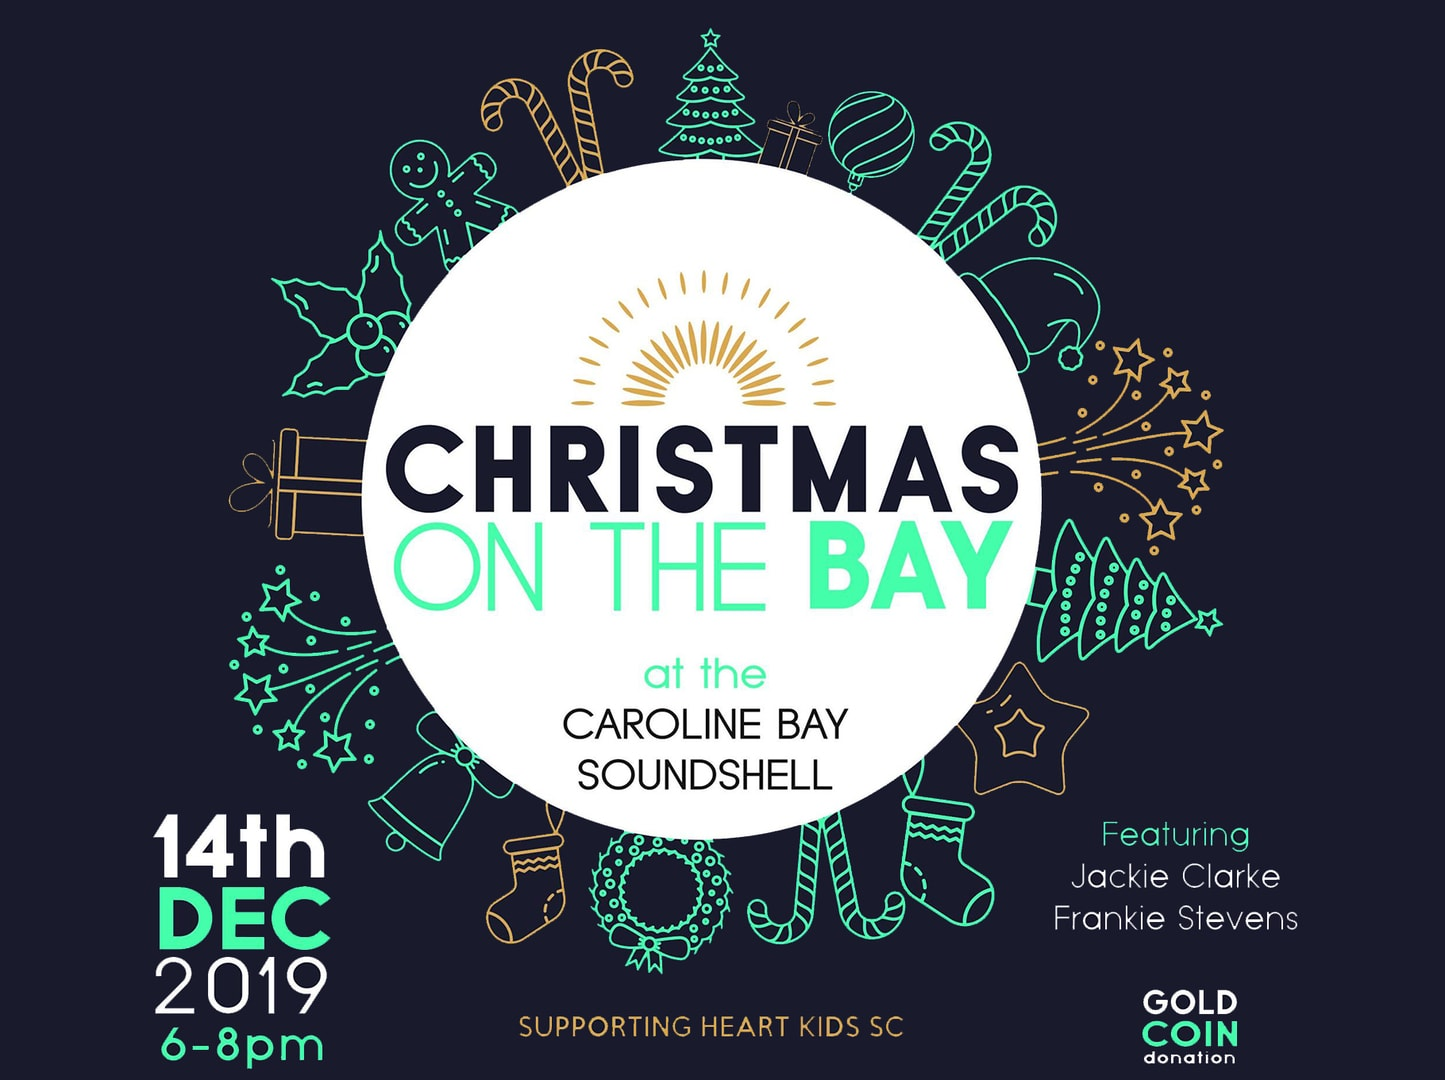 Christmas On the Bay Outdoor Concert Caroline Bay Soundshell Timaru